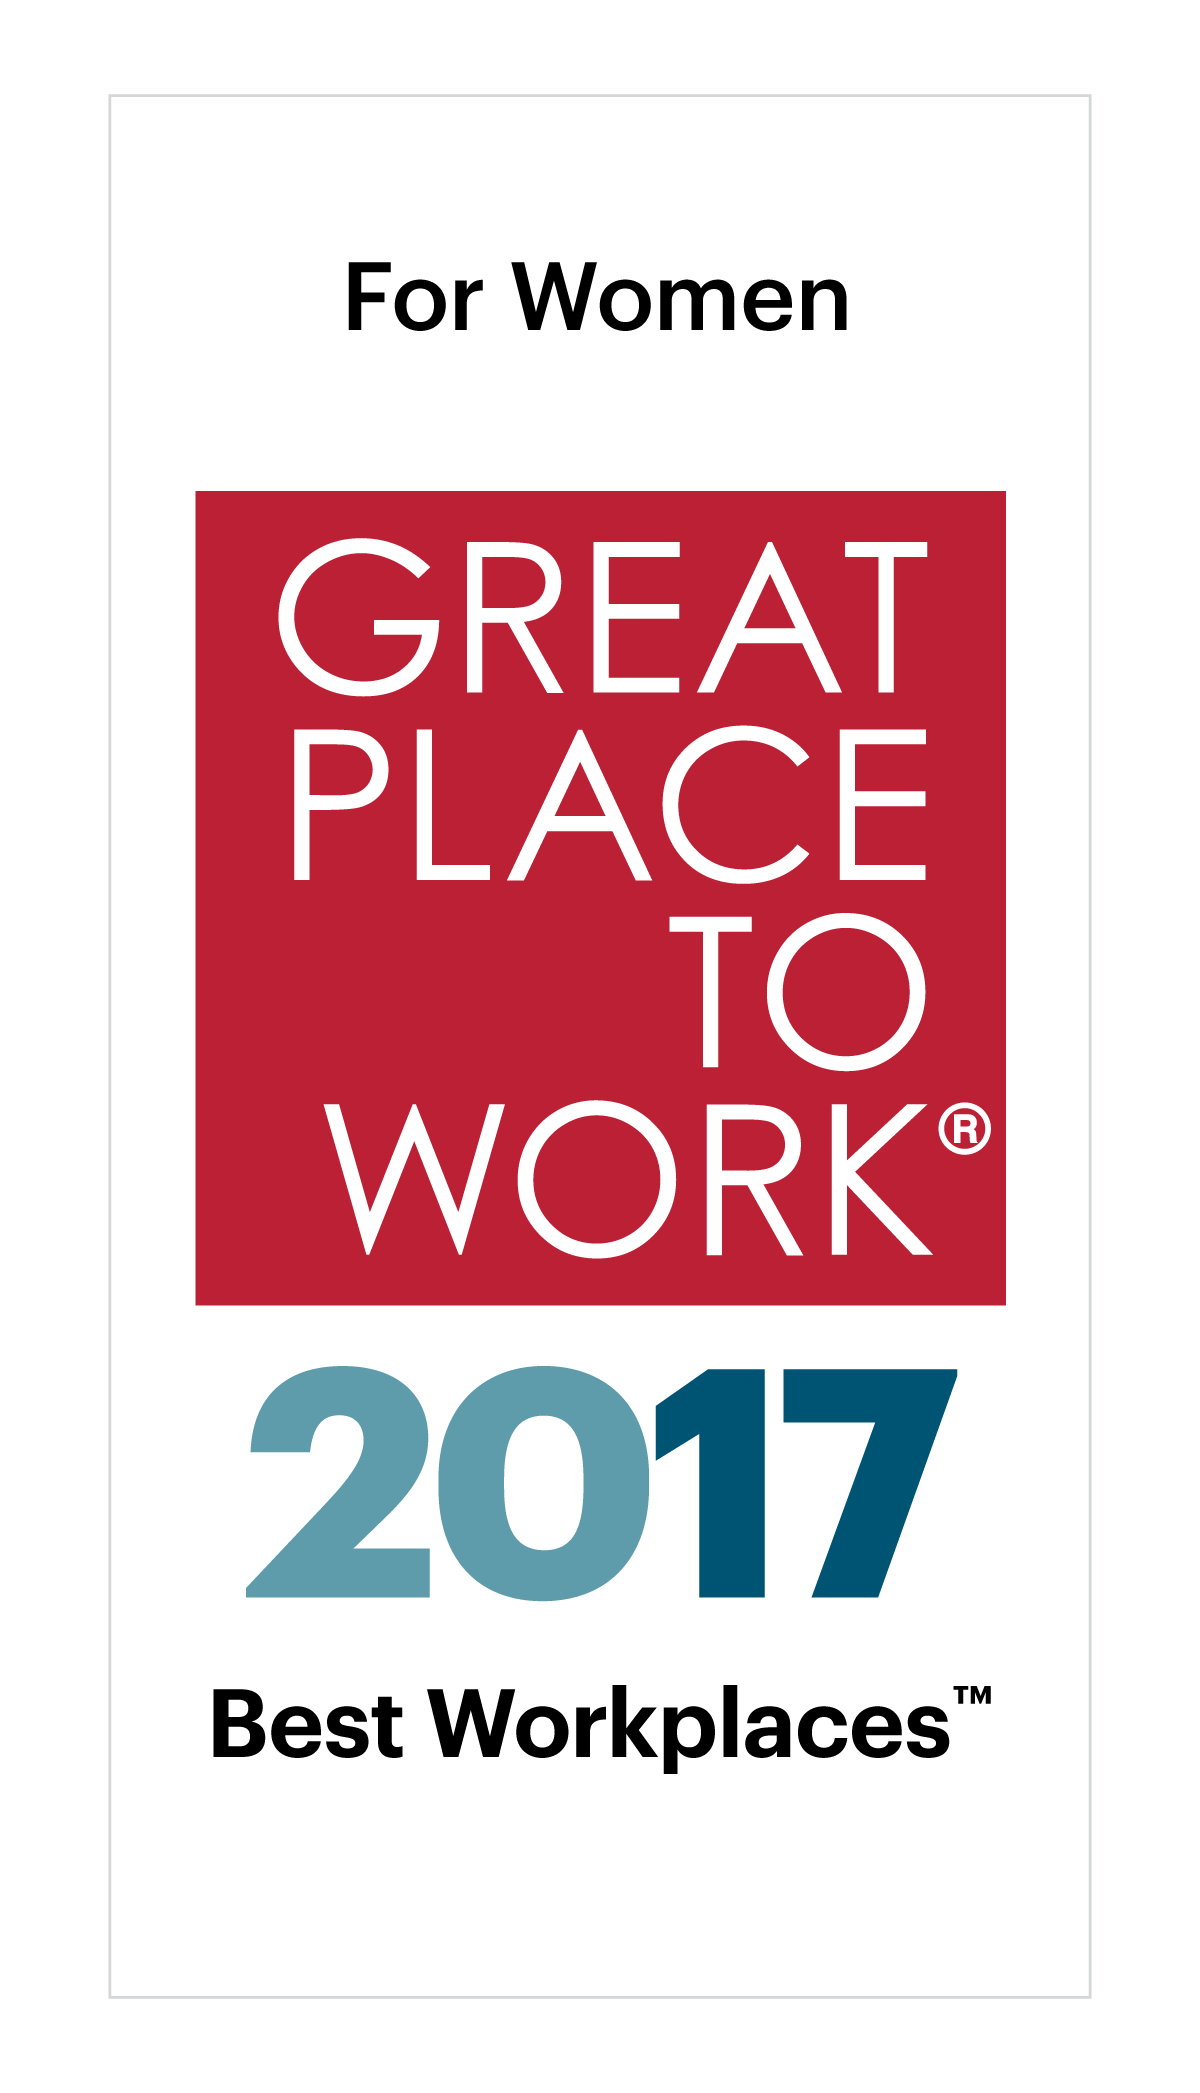 best workplaces for women 2017